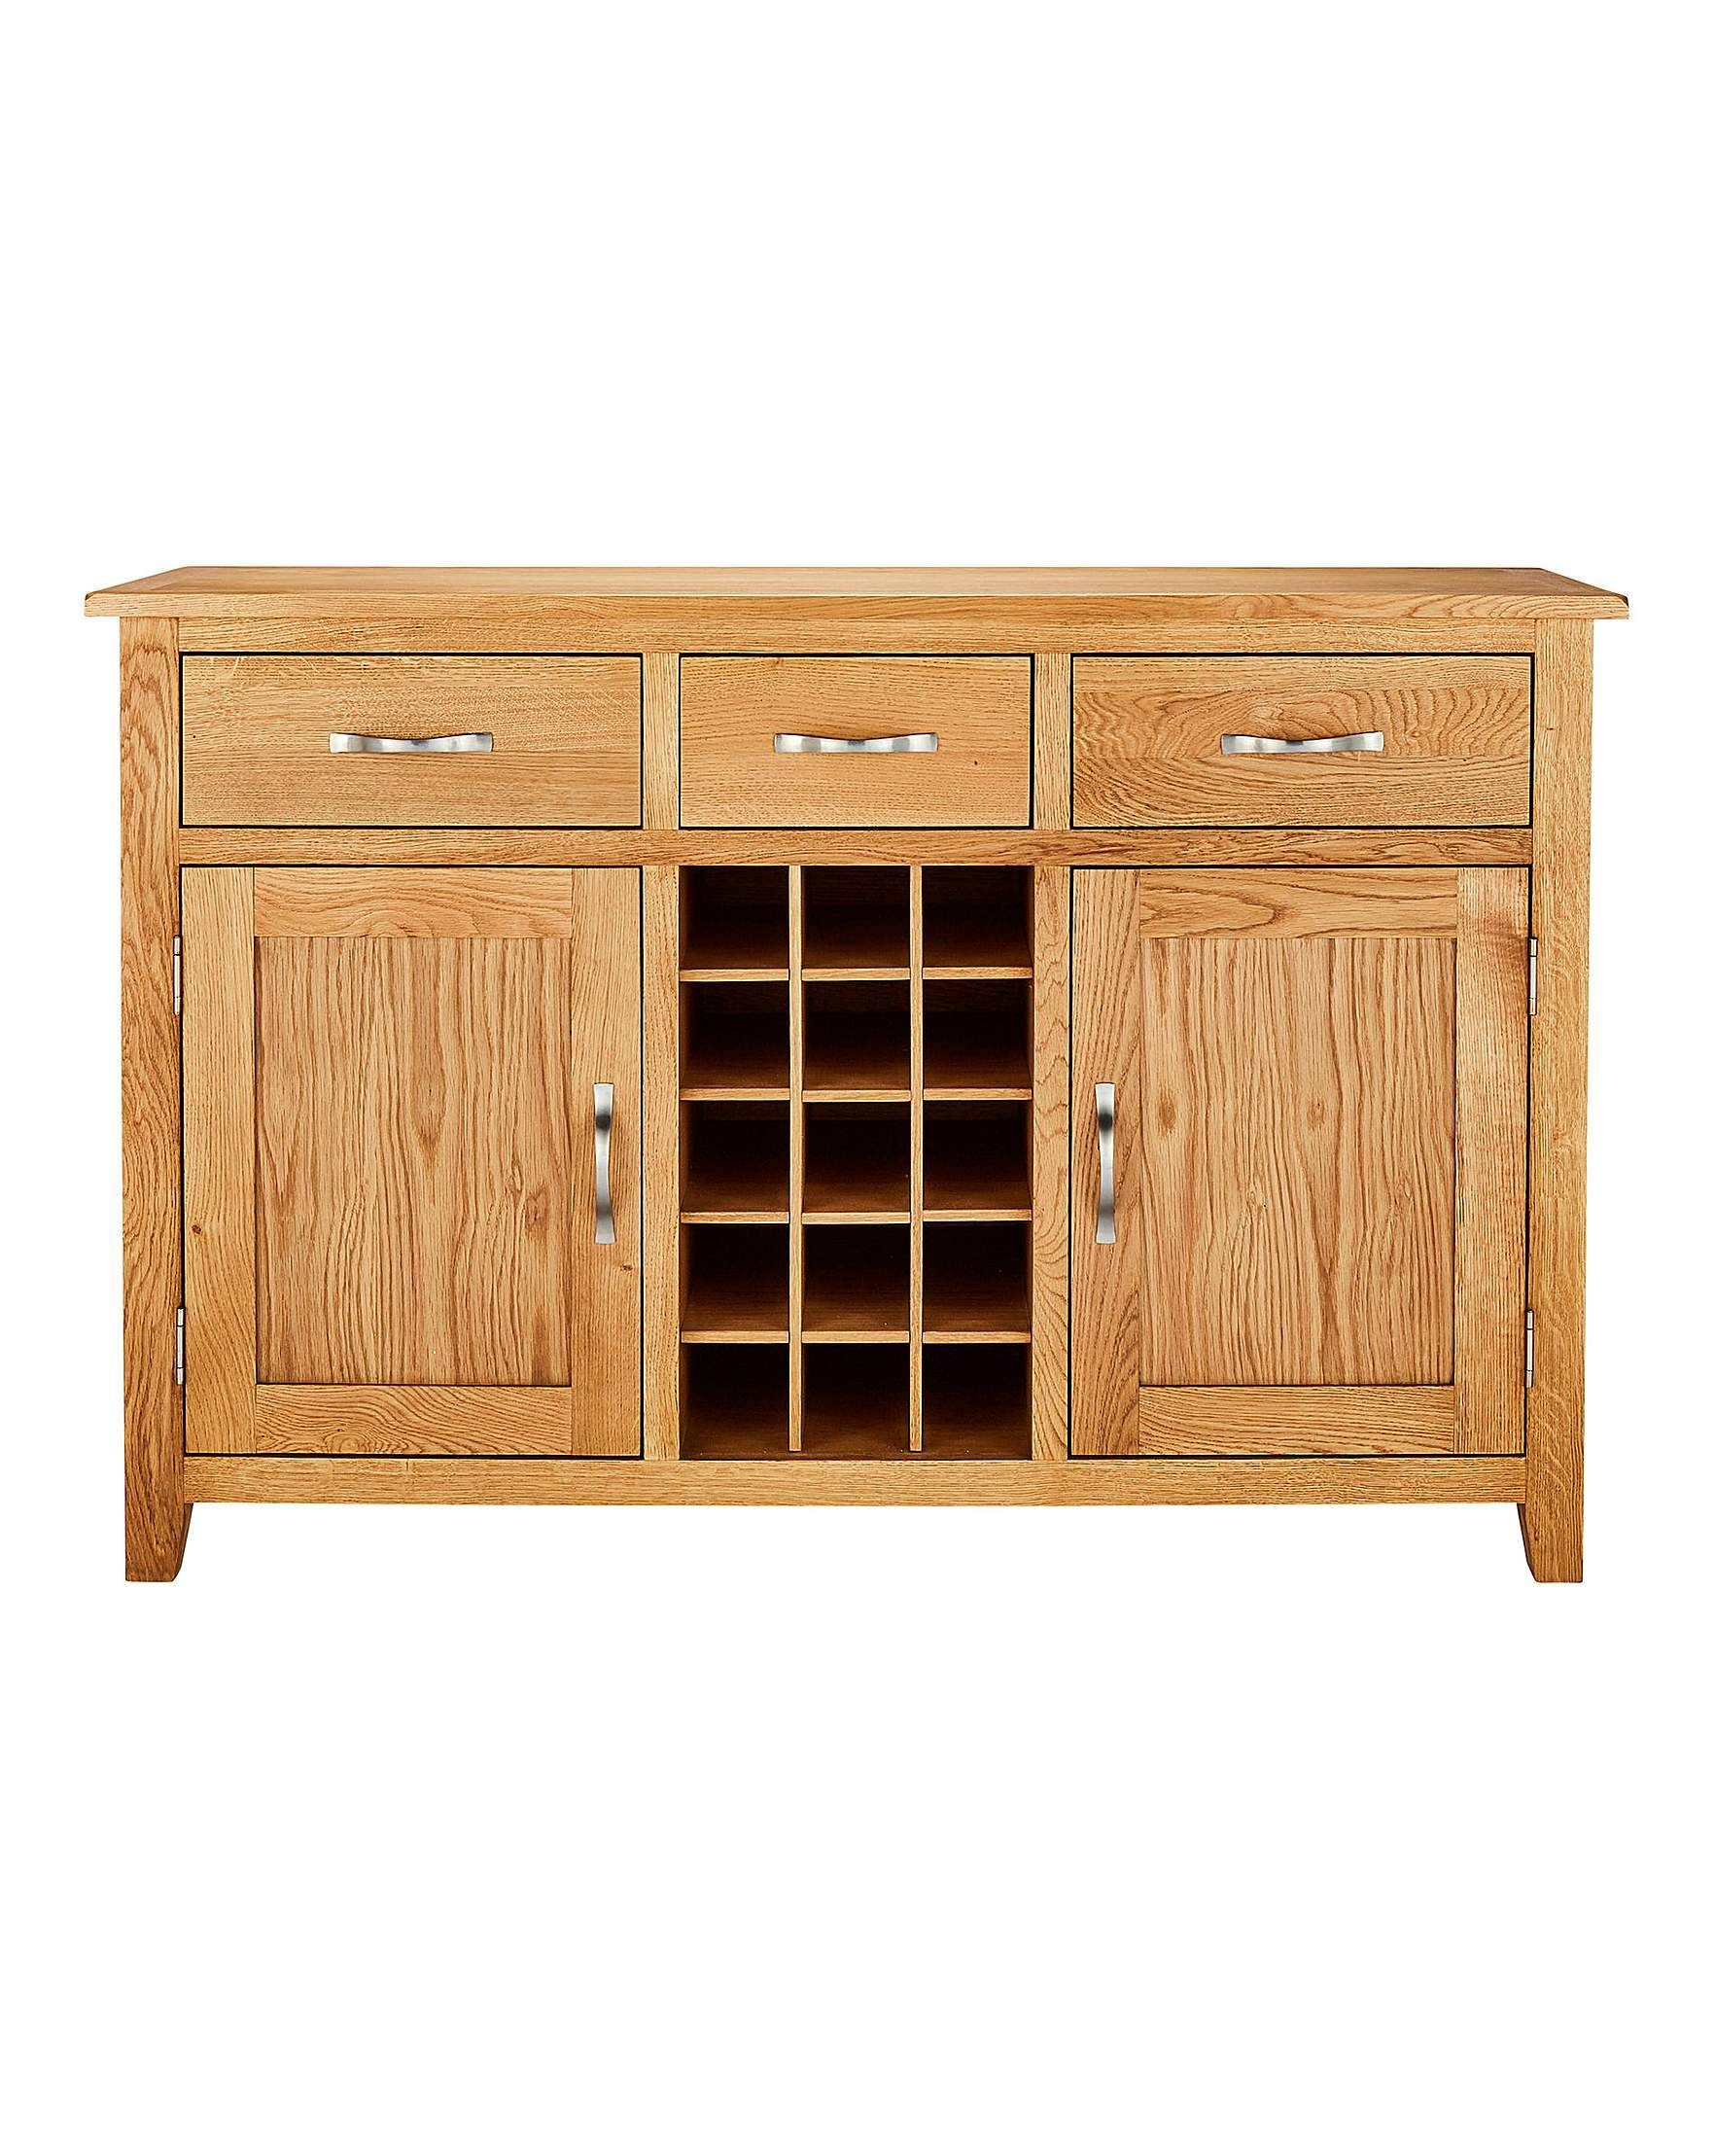 Cabinets & Sideboards | Lounge Furniture | Home | J D Williams with regard to Lounge Sideboards (Image 2 of 15)